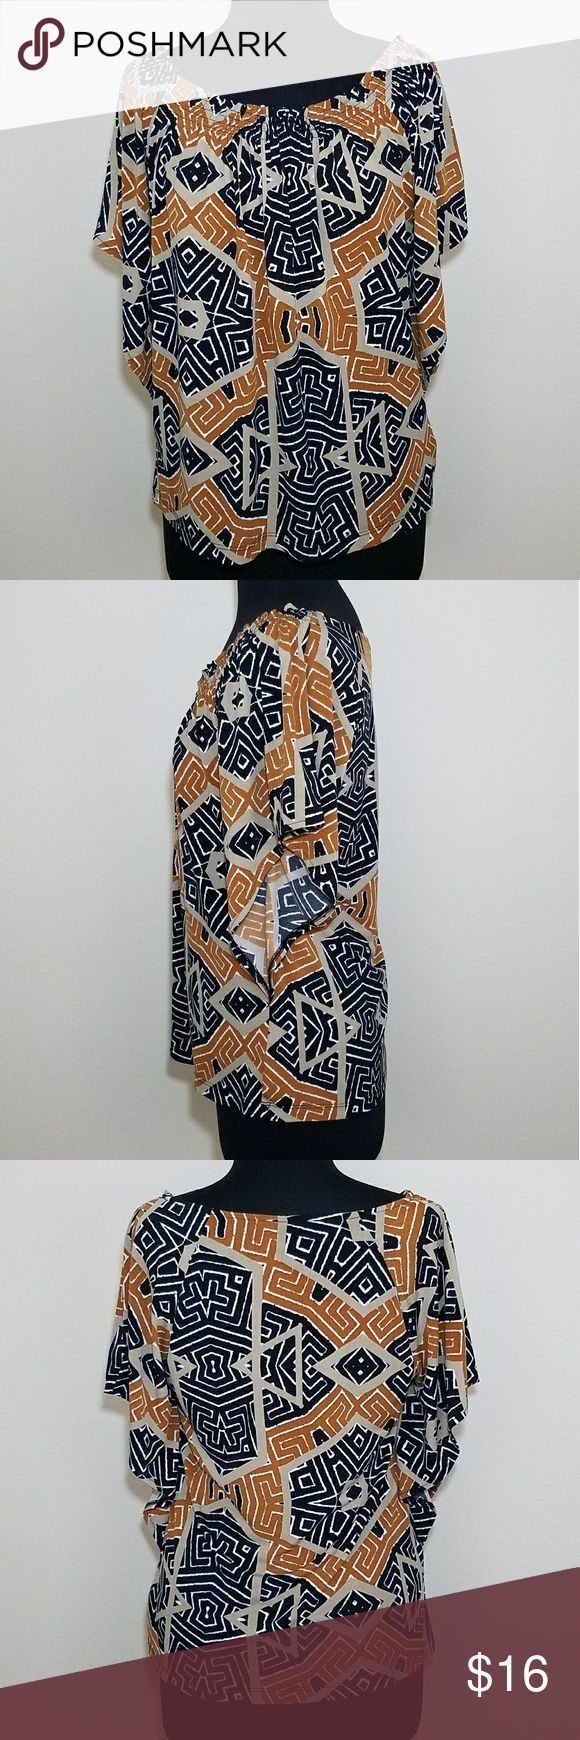 Geometric Short Sleeve Batwing Scoop Stretch Top Excellent used condition. No rips stains or tears.  Rust, beige, black and white geo print, short batwing sleeve, stretch blouse with elastic smocked scoop neck.  95% polyester, 5% spandex.   Size medium by East 5th. East 5th Tops Blouses